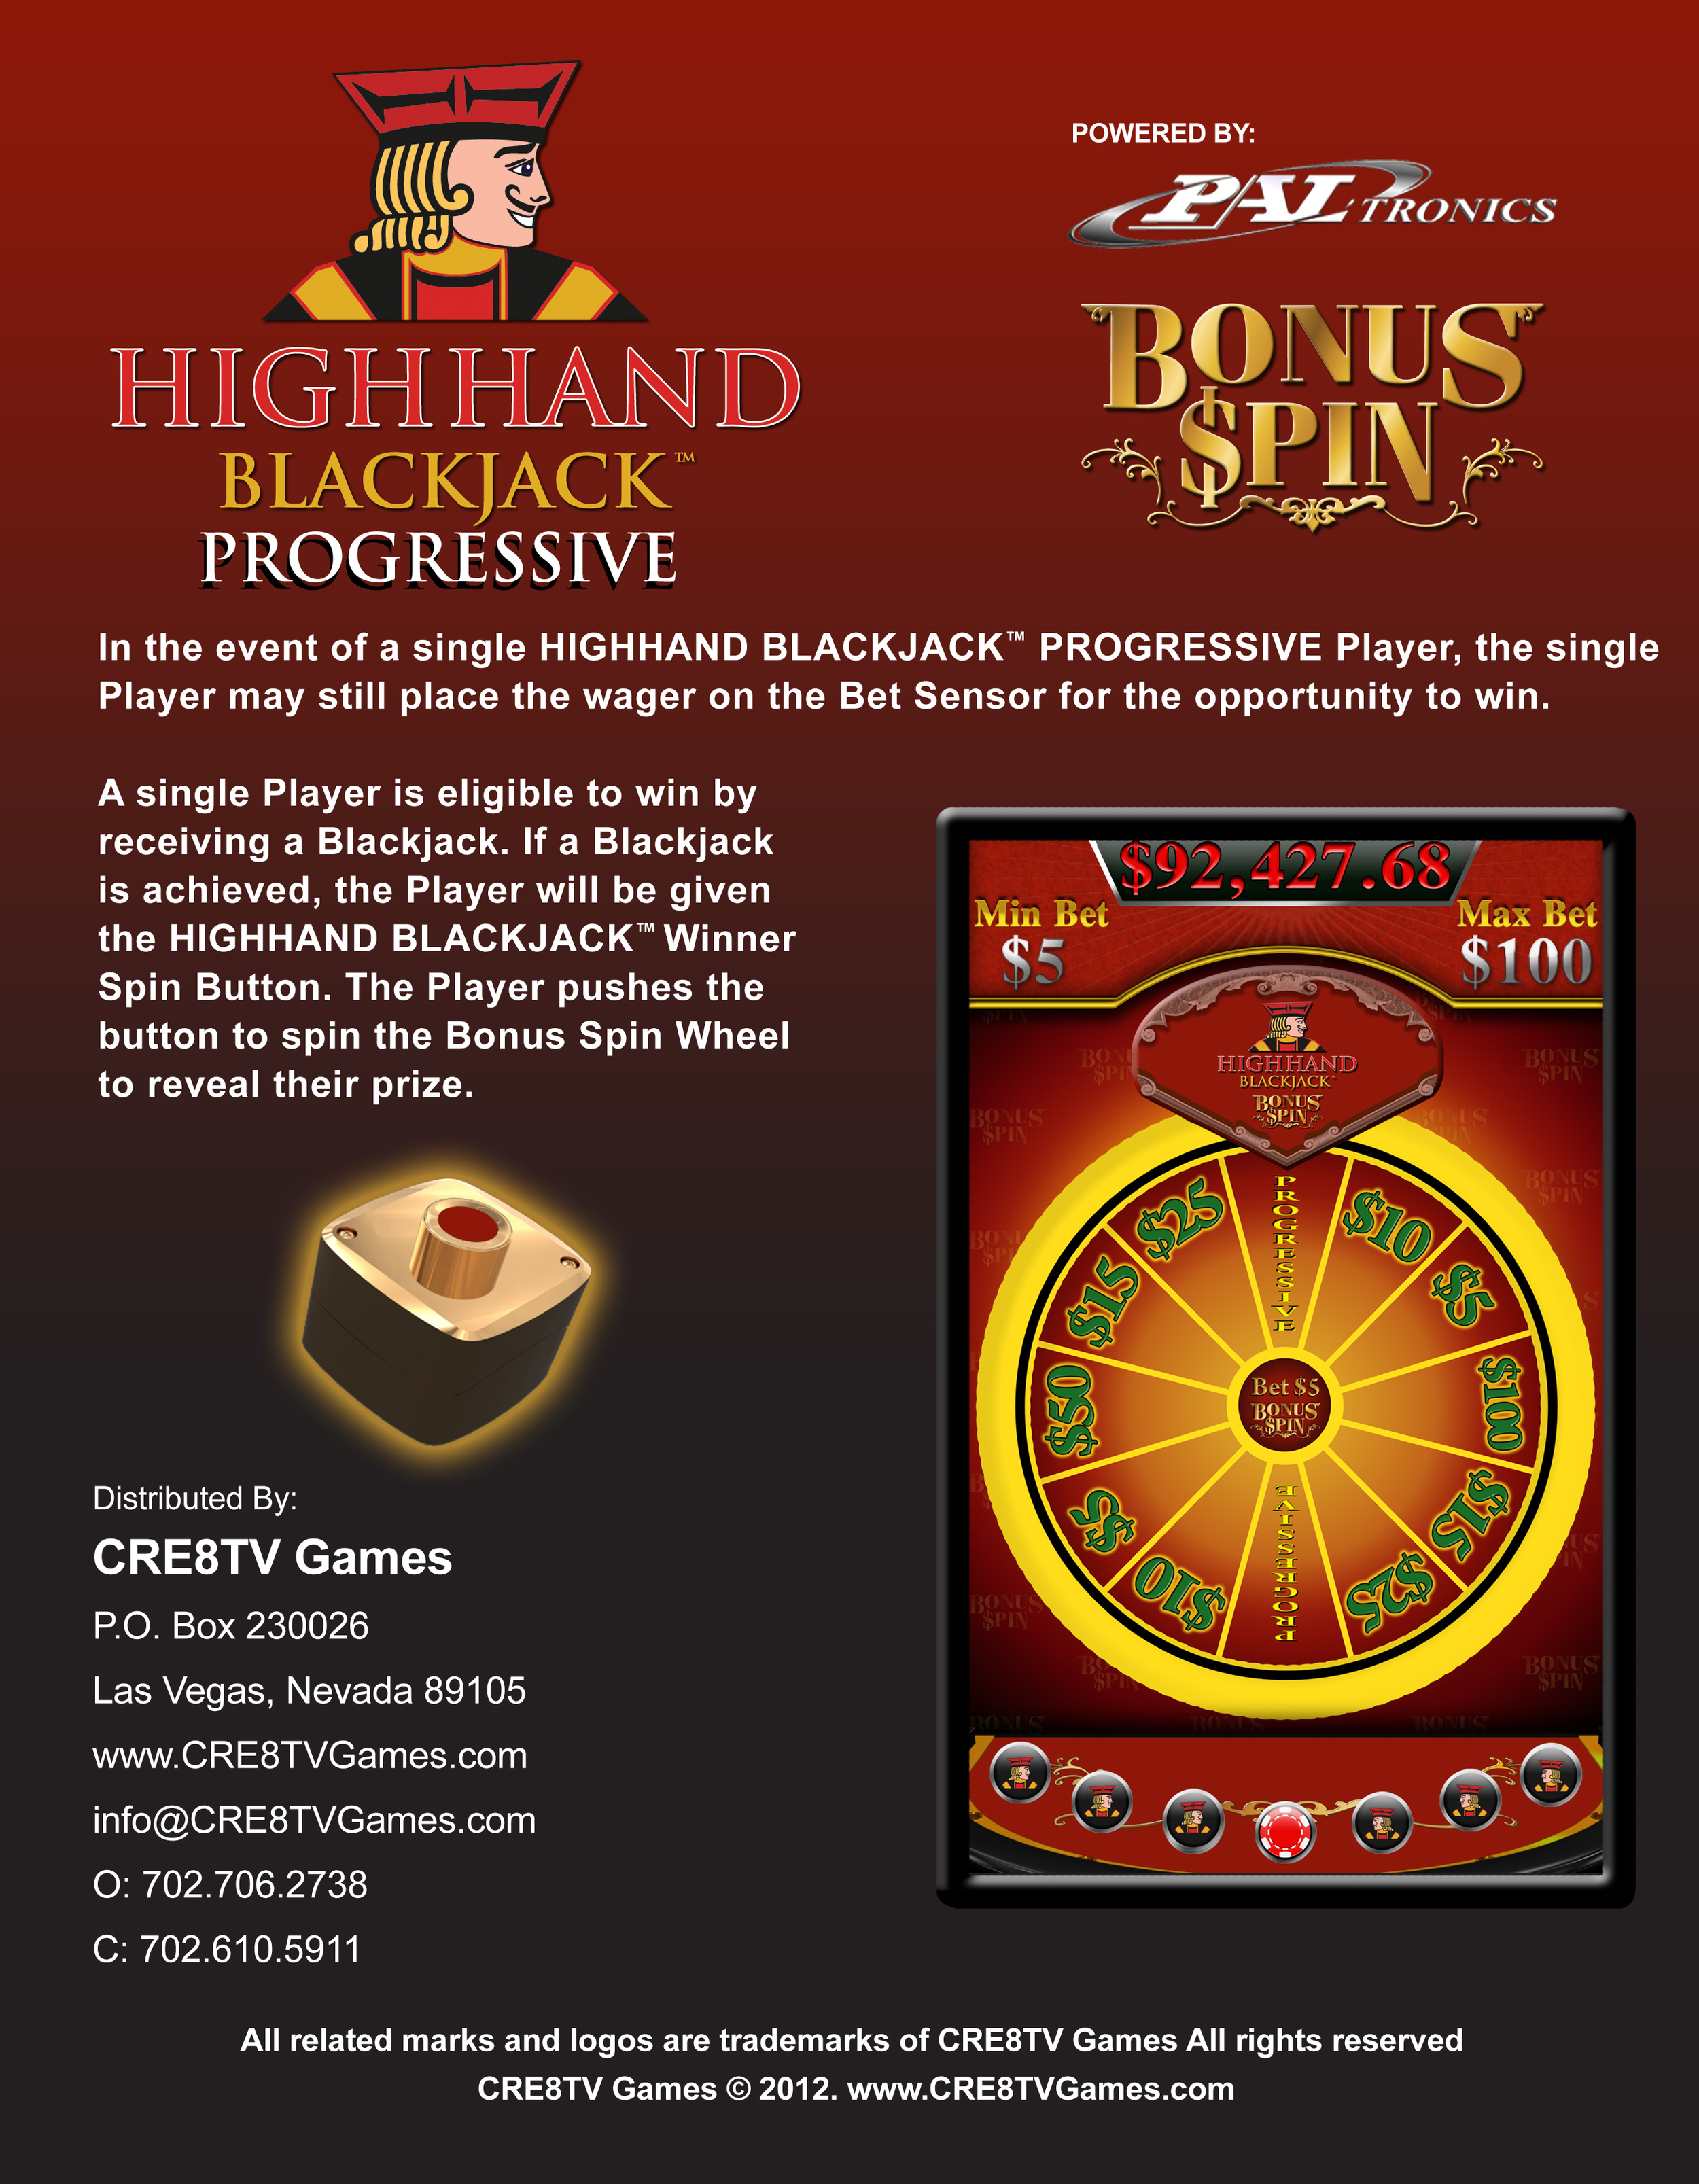 HighHand Blackjack Game SheetBACK2013 copy.jpg